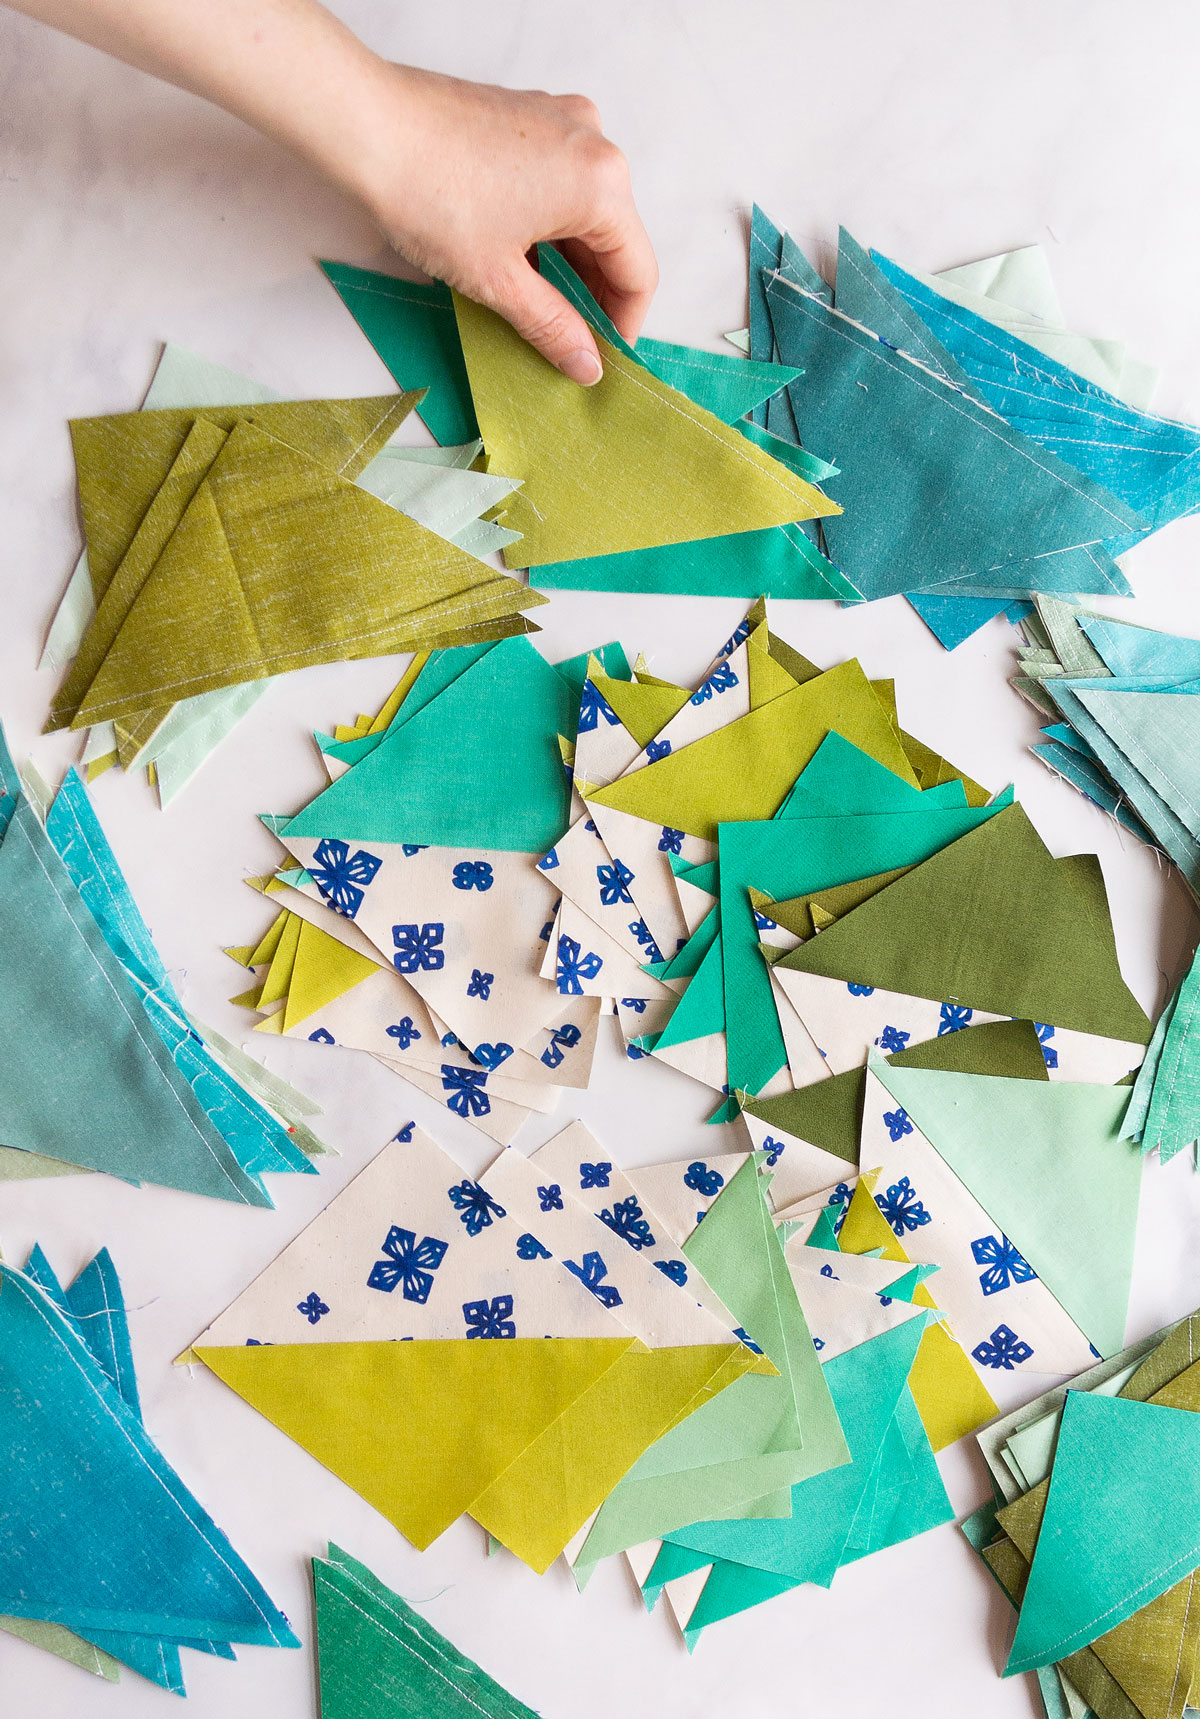 This 4-step guide will help you plan your quilts this year and maximize your productivity! A clear plan is the best way to have fun and get creative. suzyquilts.com #sewingtutorial